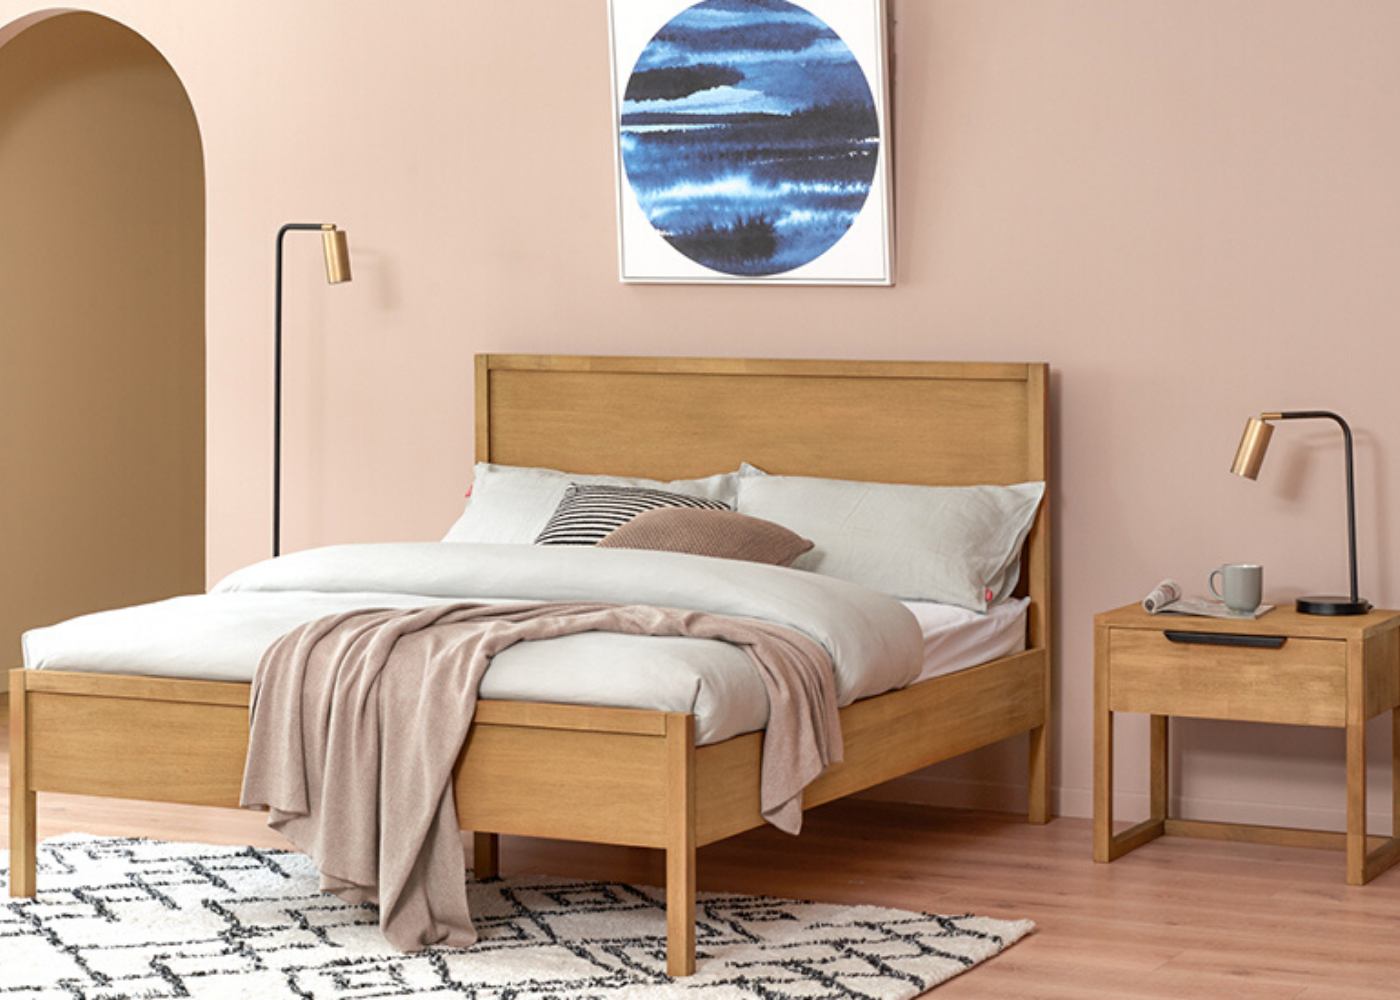 Spruce up your pad with refreshing, accessible and functional furniture from Castlery